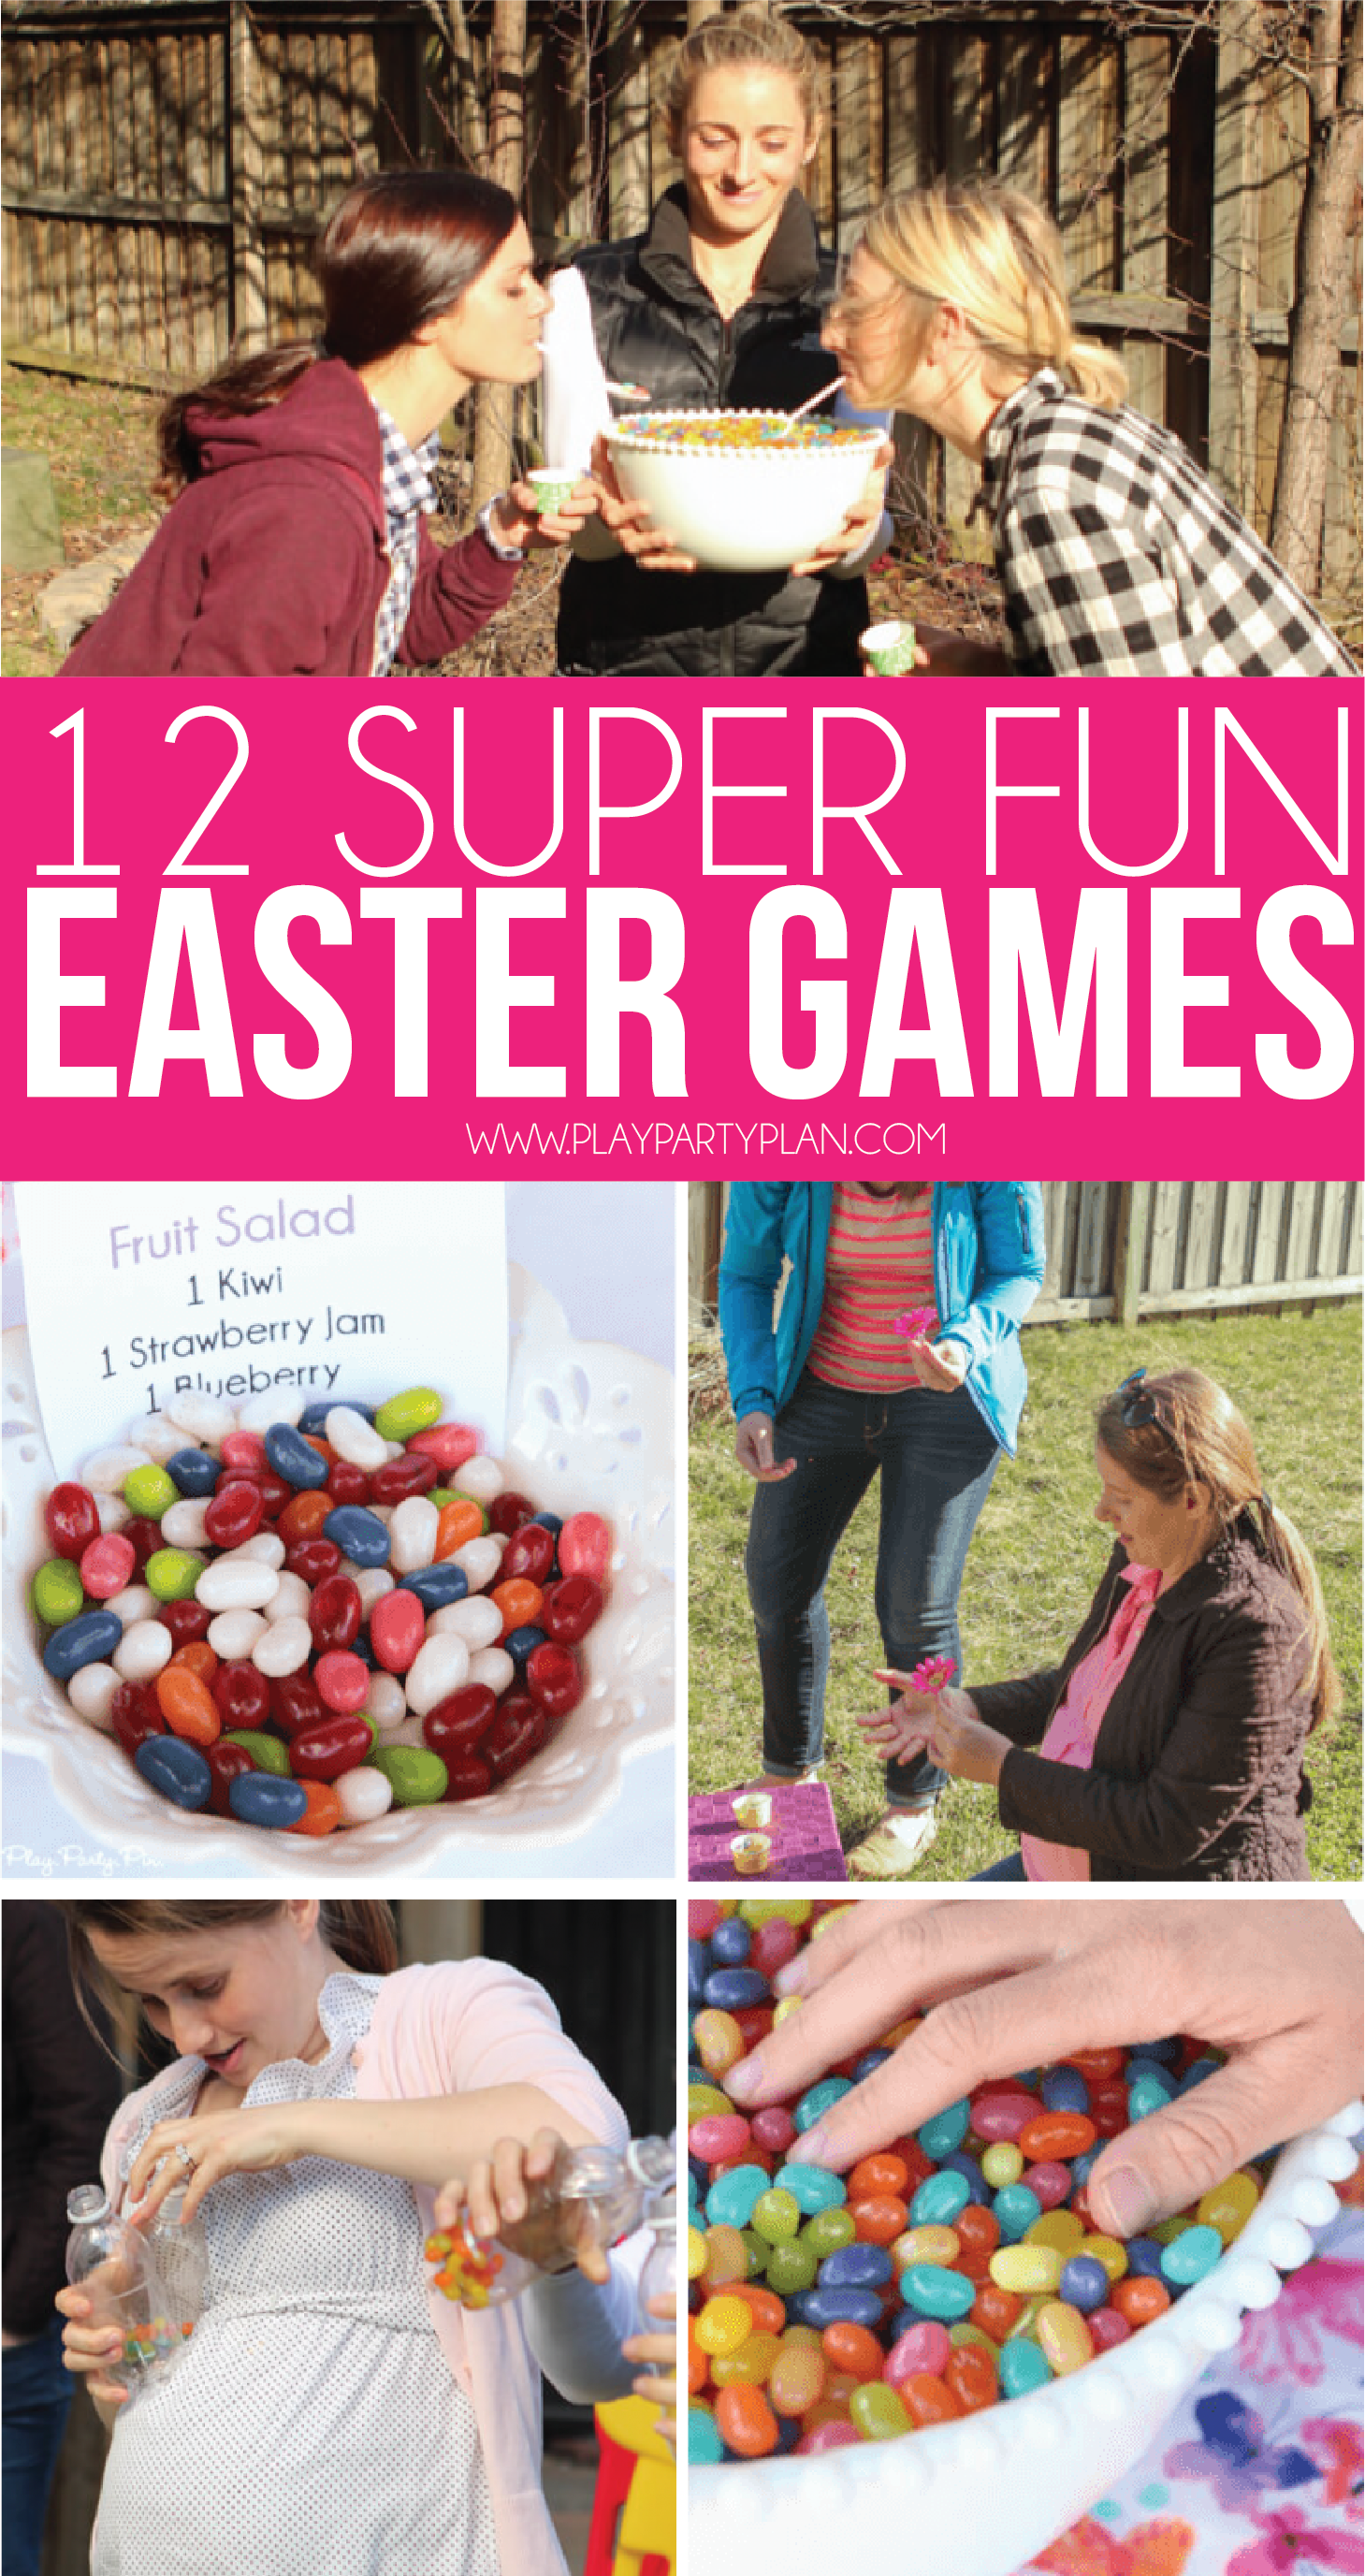 Easter games for adults